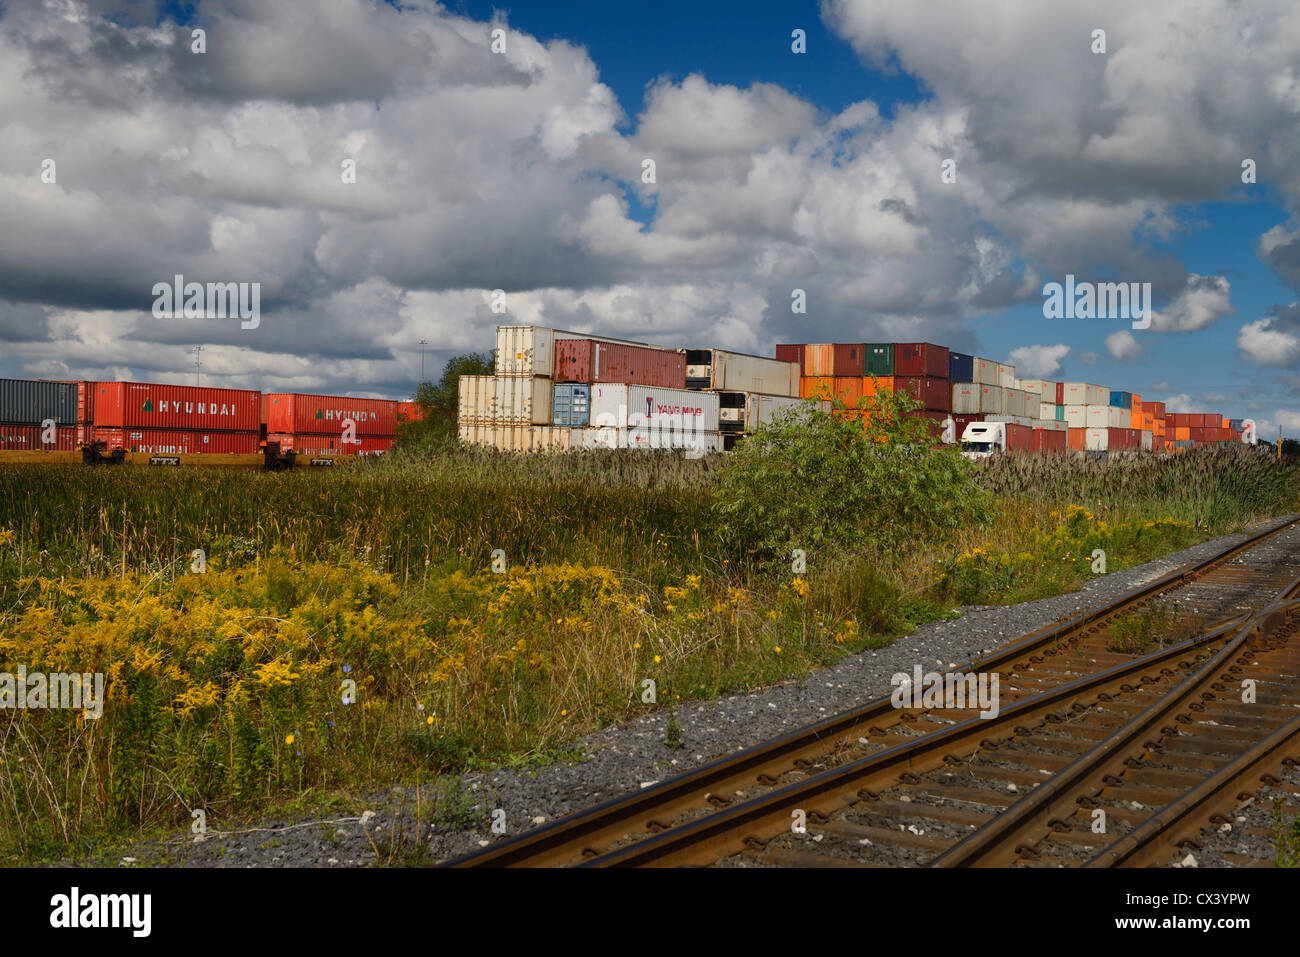 Intermodal transport containers stacked at a rail depot for delivery by truck Ontario Canada - Stock Image